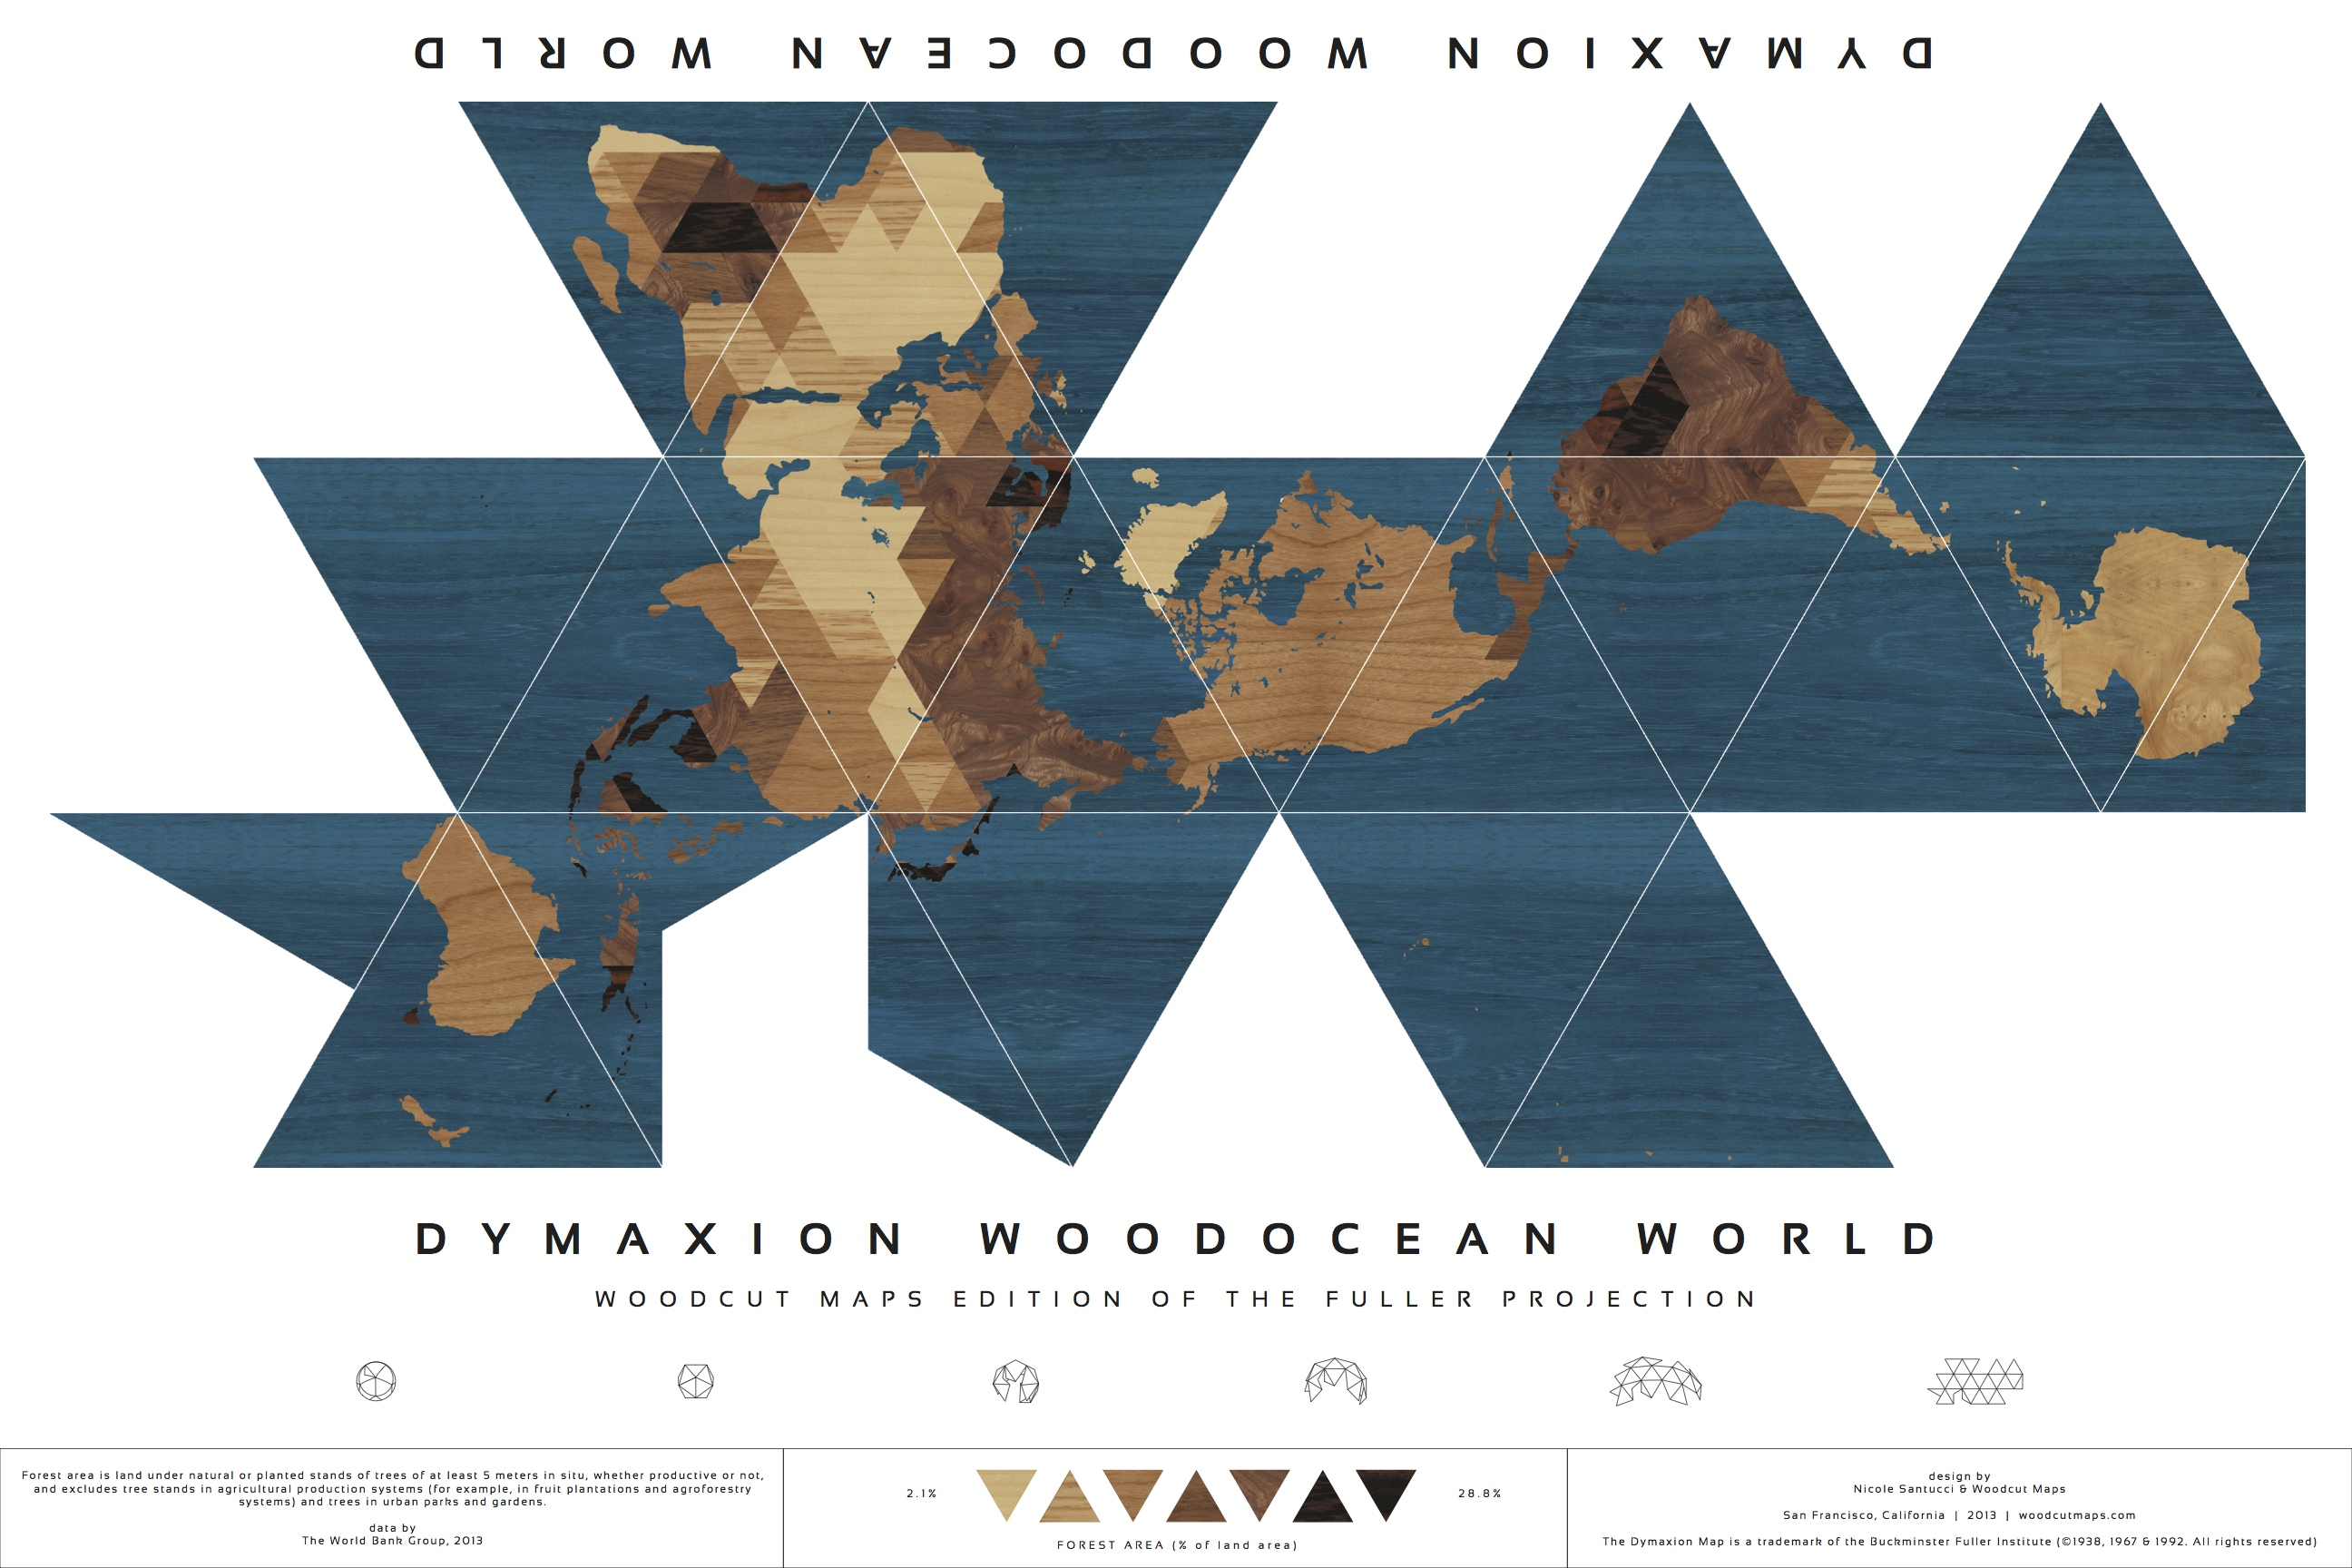 Celebrating unusual maps the winning dymaxion redux and cahills the dymaxion map is presented as a more accurate competitor to the popular mercator projection which distorts the sizes of continents gumiabroncs Image collections